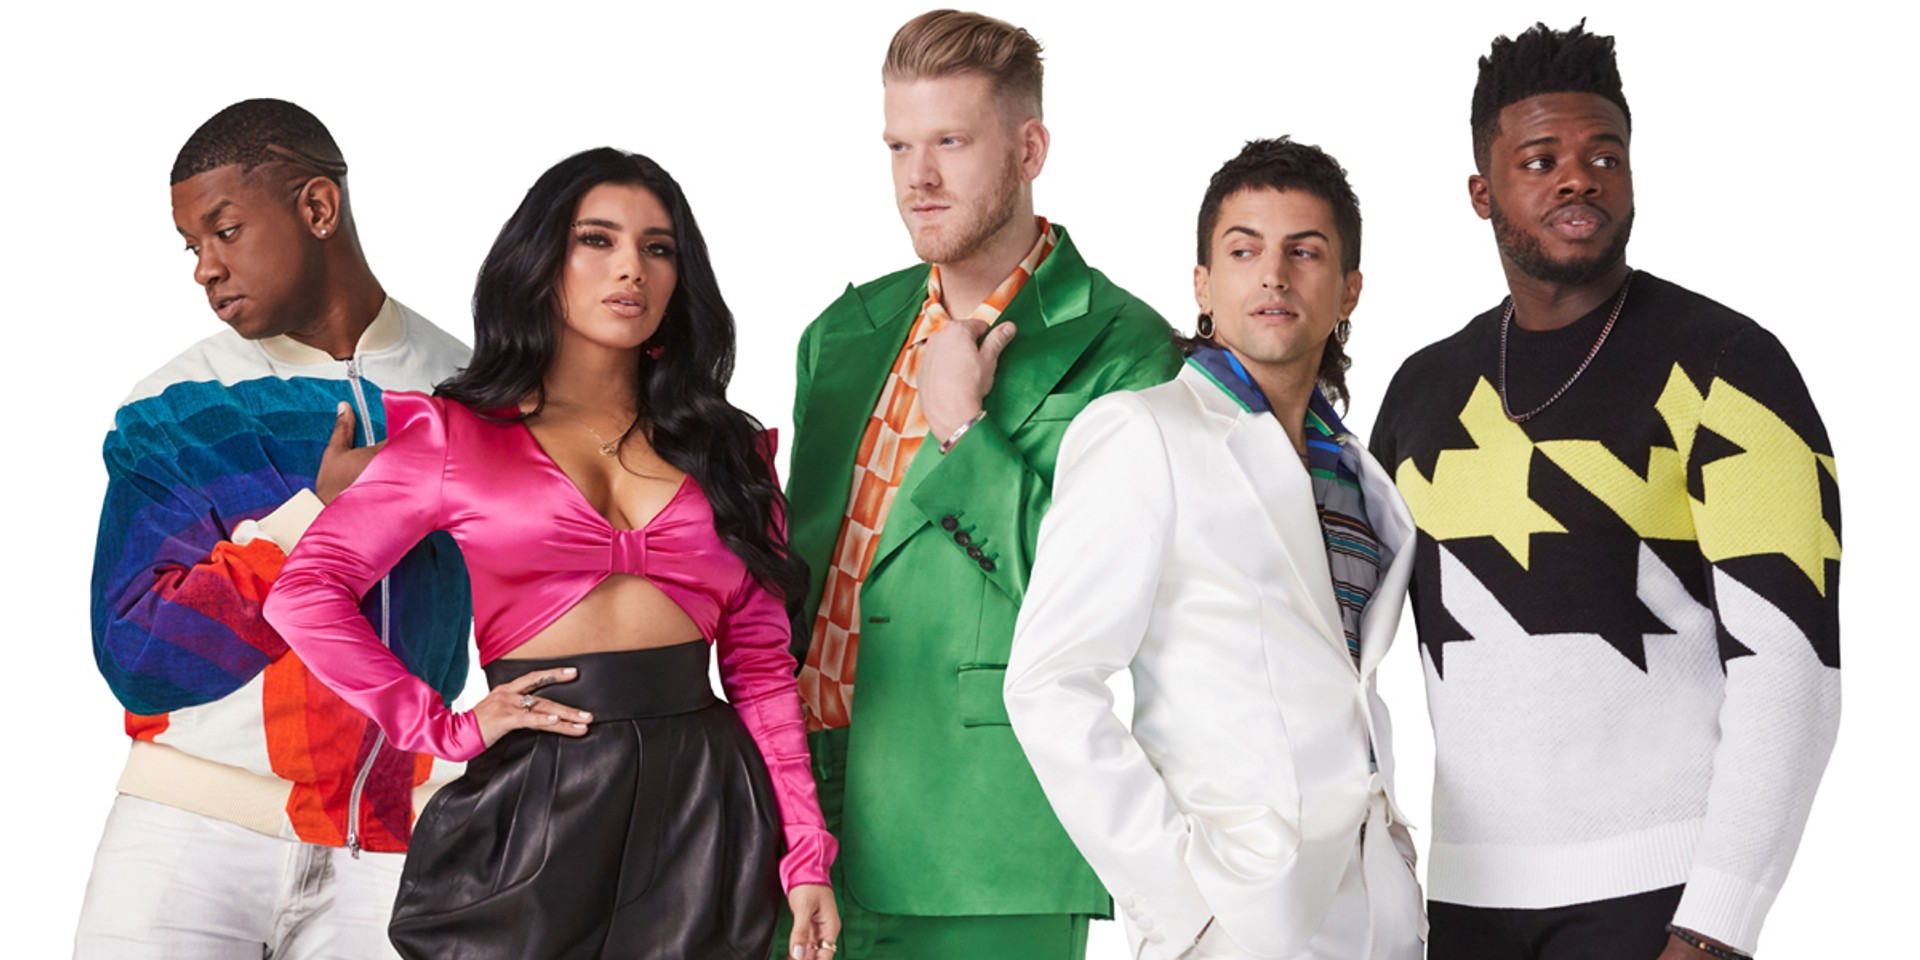 Pentatonix is returning to Singapore in 2020 for The World Tour